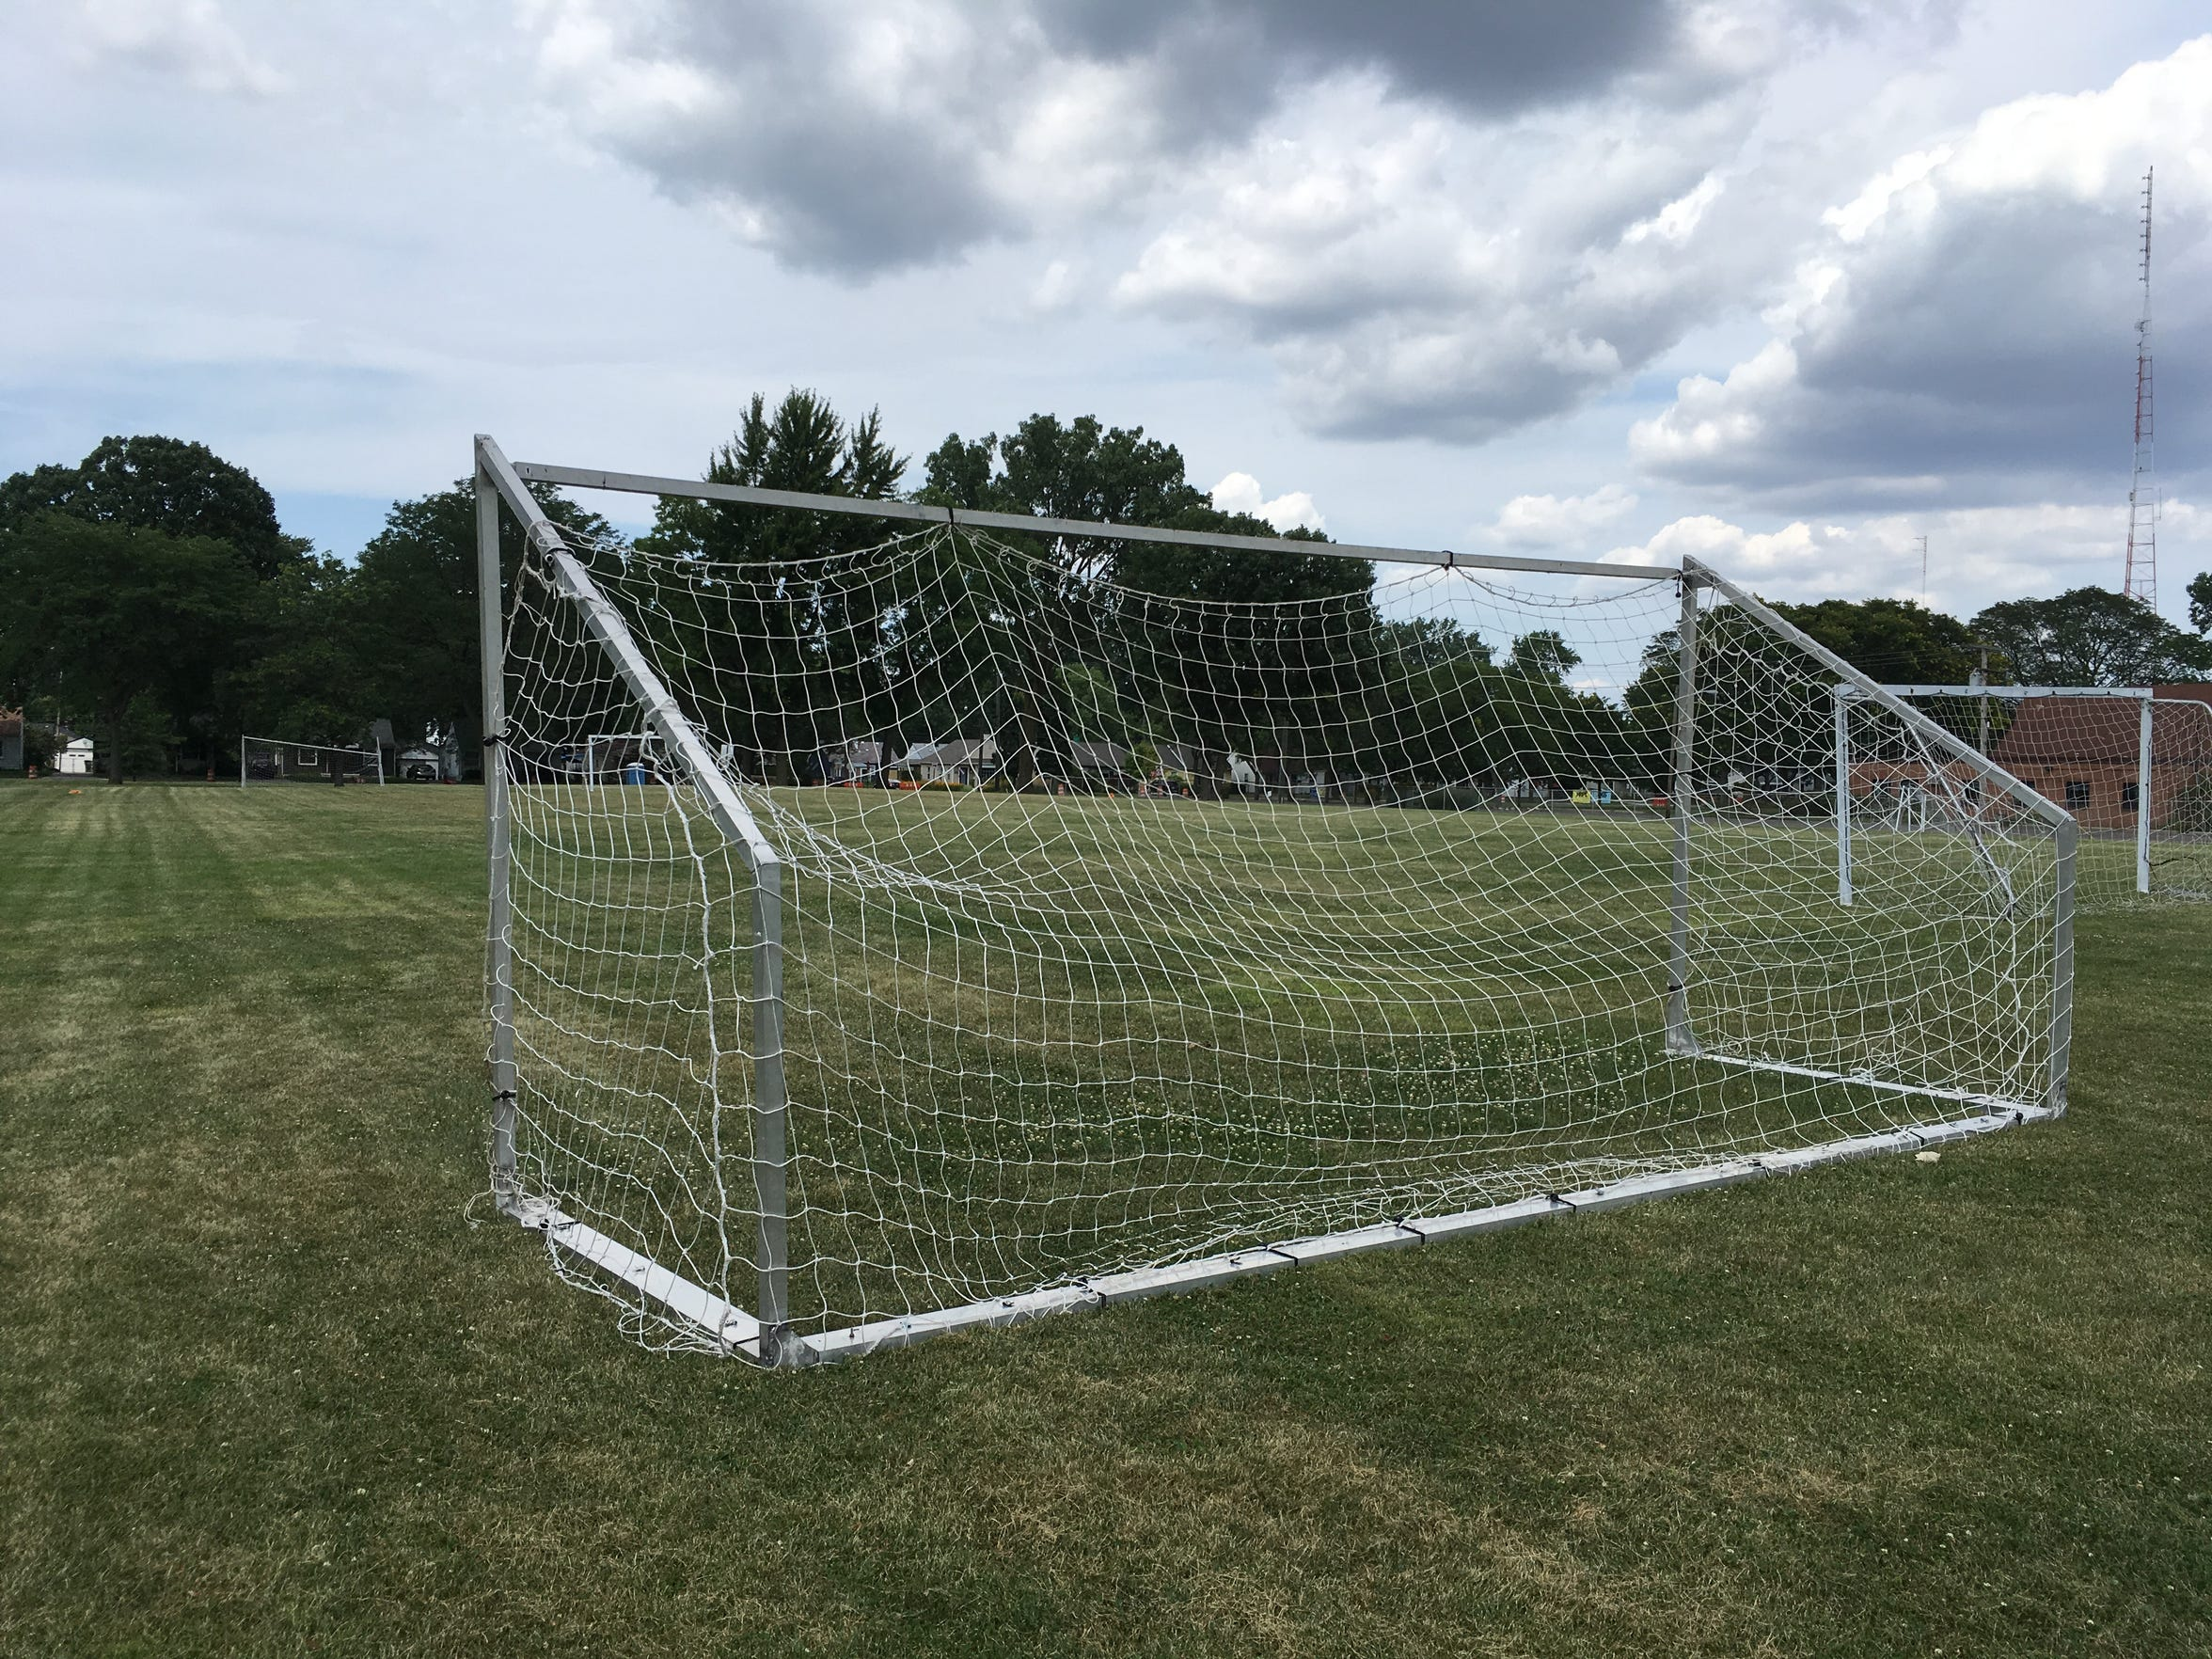 The soccer field at Martin Road Park in Ferndale was paid for in part by the car show that launched the Woodward Dream Cruise. League play starts again there in September. There is no signage marking its connection to the Dream Cruise or Nelson House.